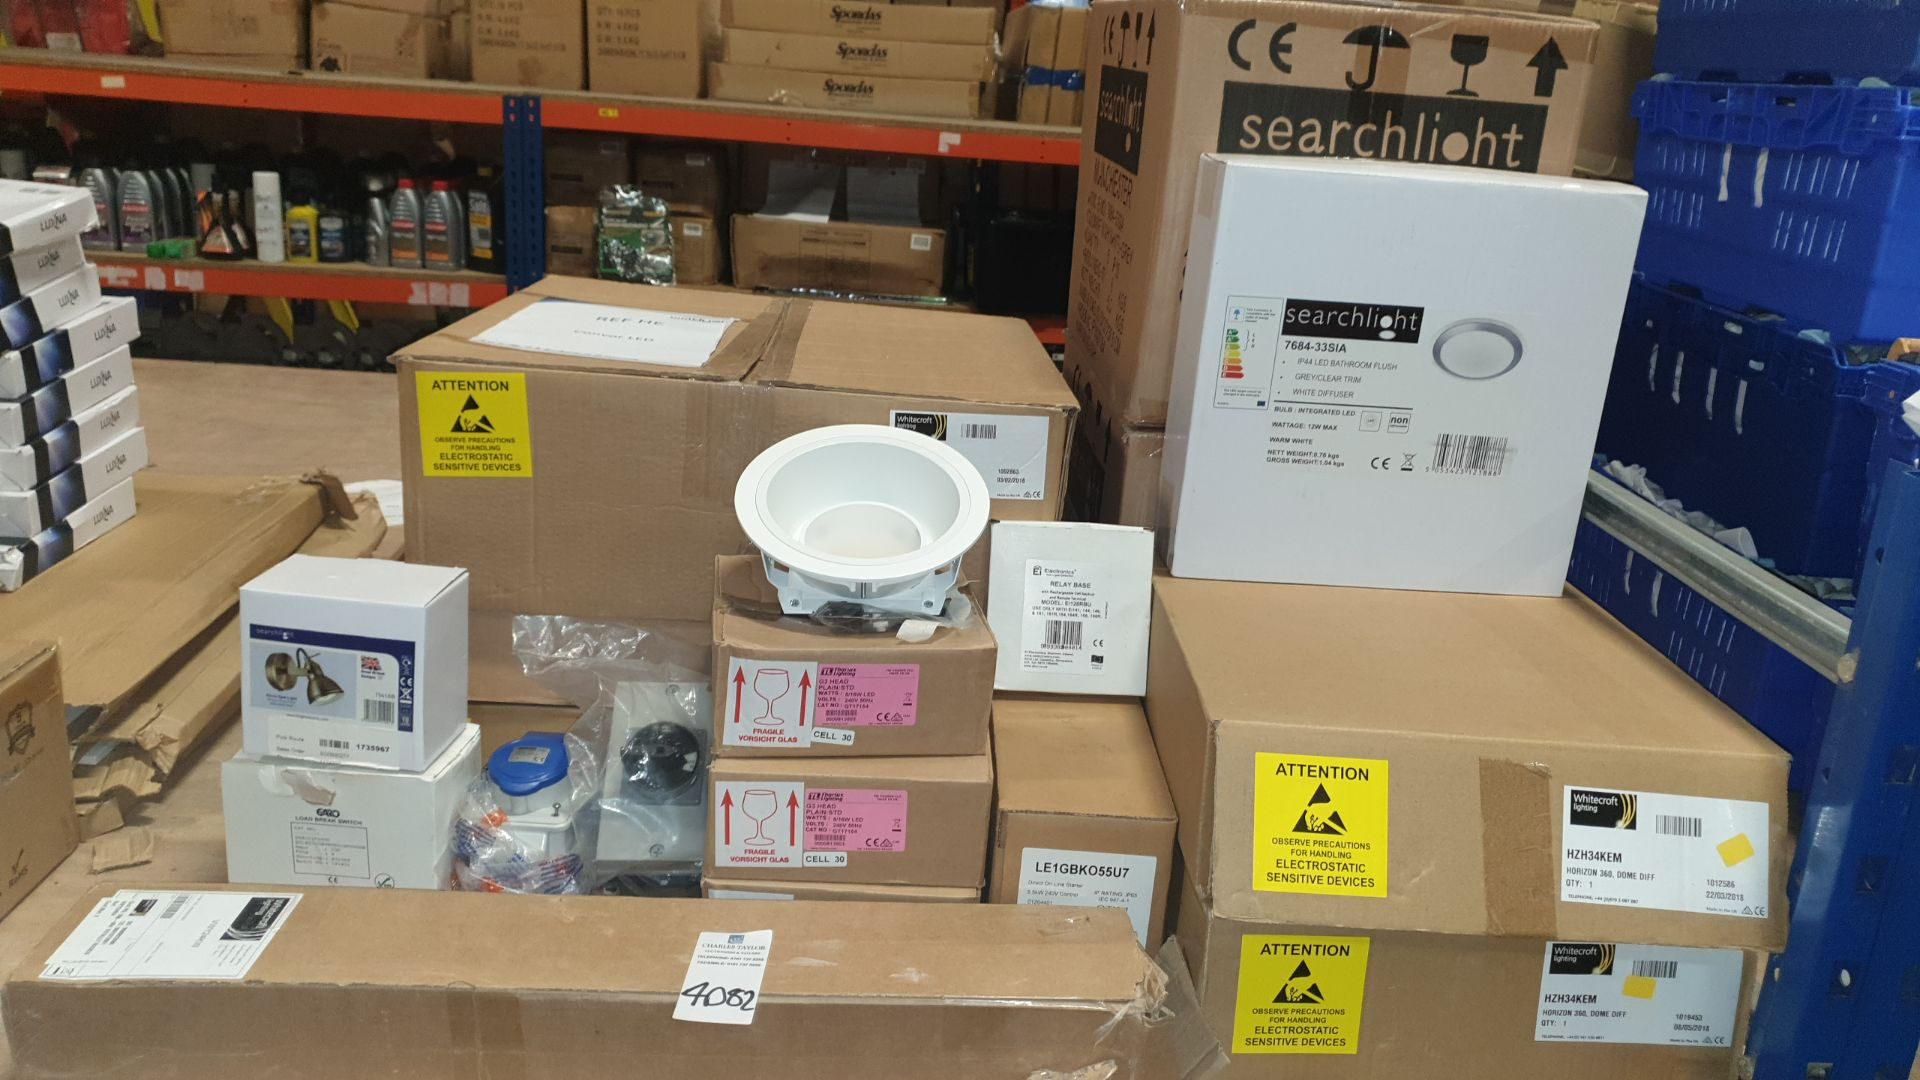 MIXED 15+ PIECE TRADE LOT CONTAINING SEARCHLIGHT FOCUS SPOT LIGHT, SEARCHLIGHT LED BATHROOM FLUSH,